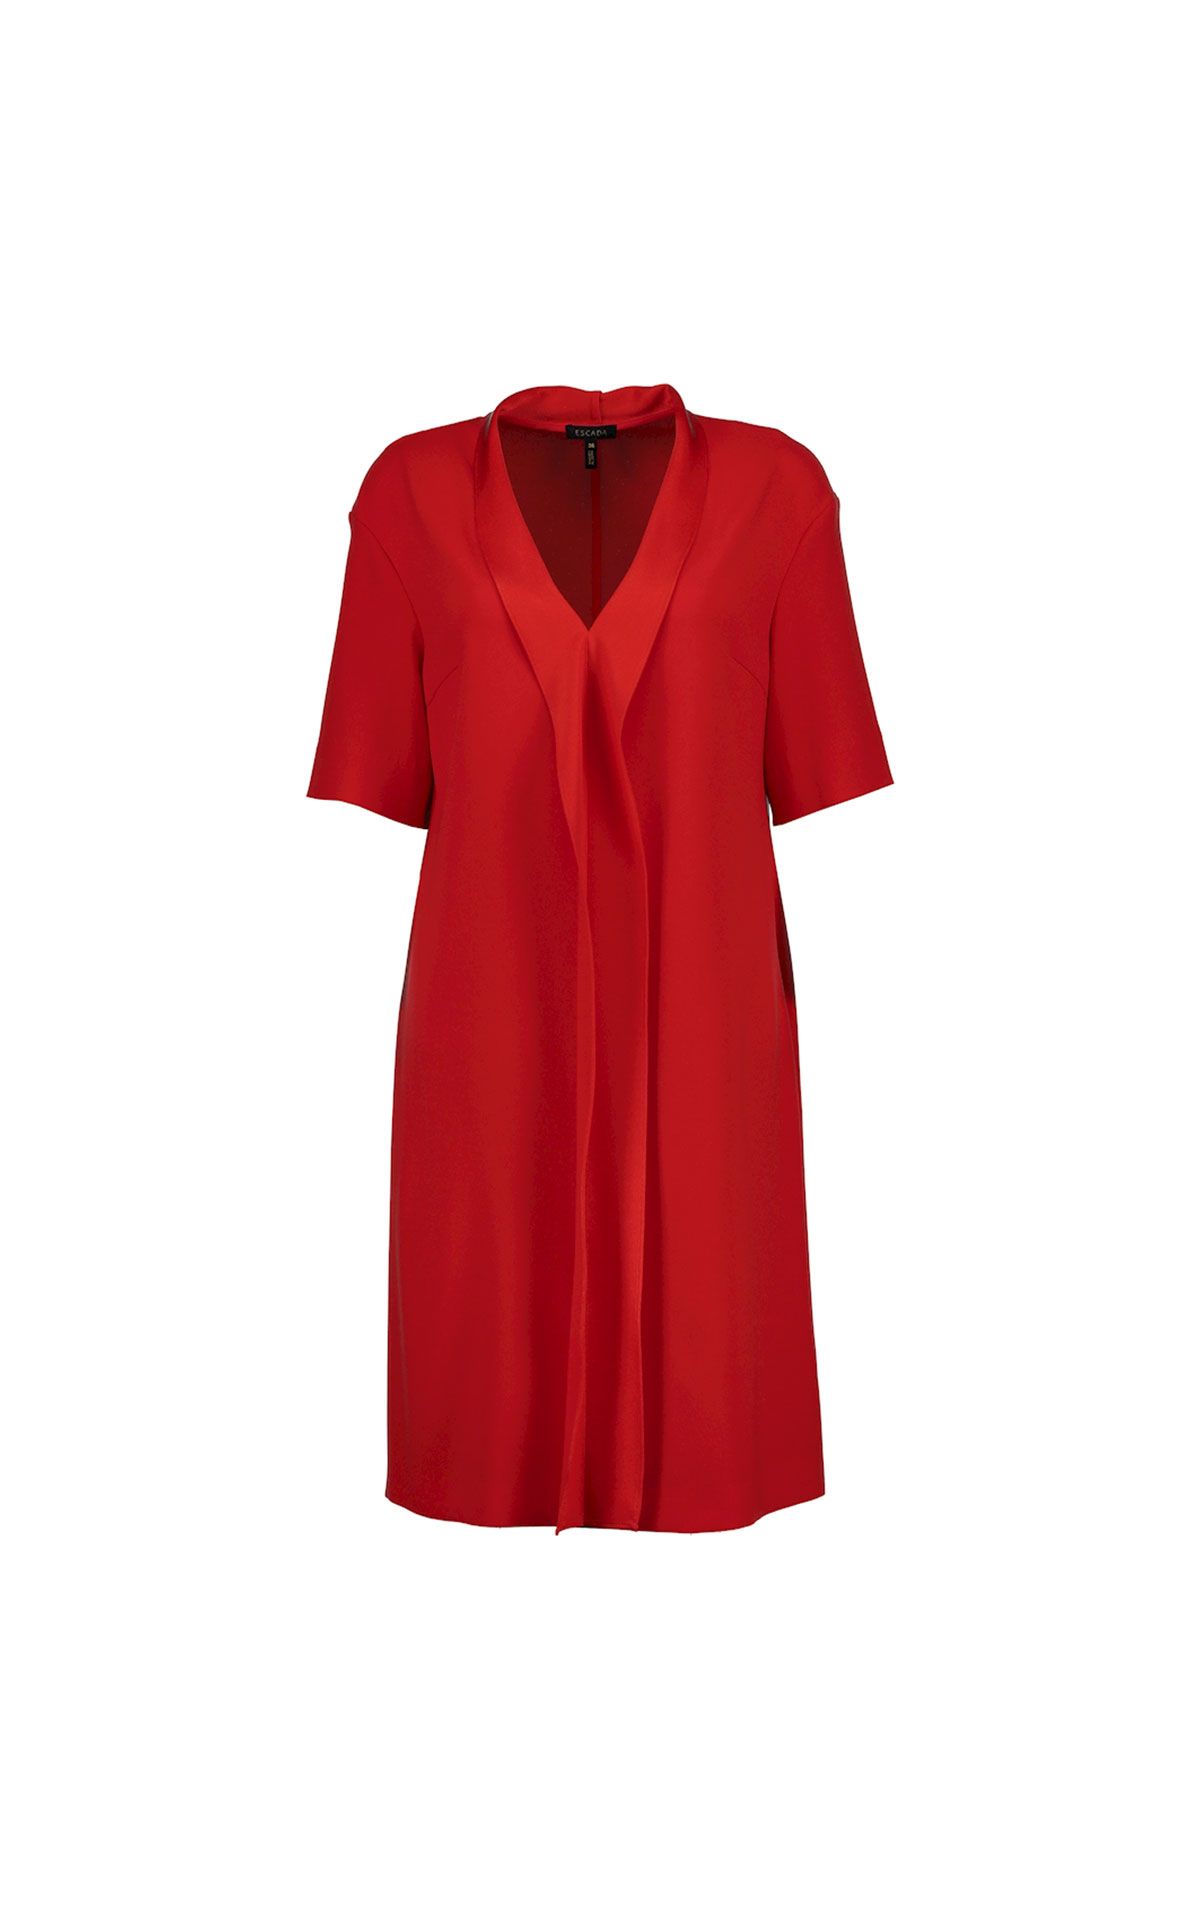 Escada Red dress from Bicester Village